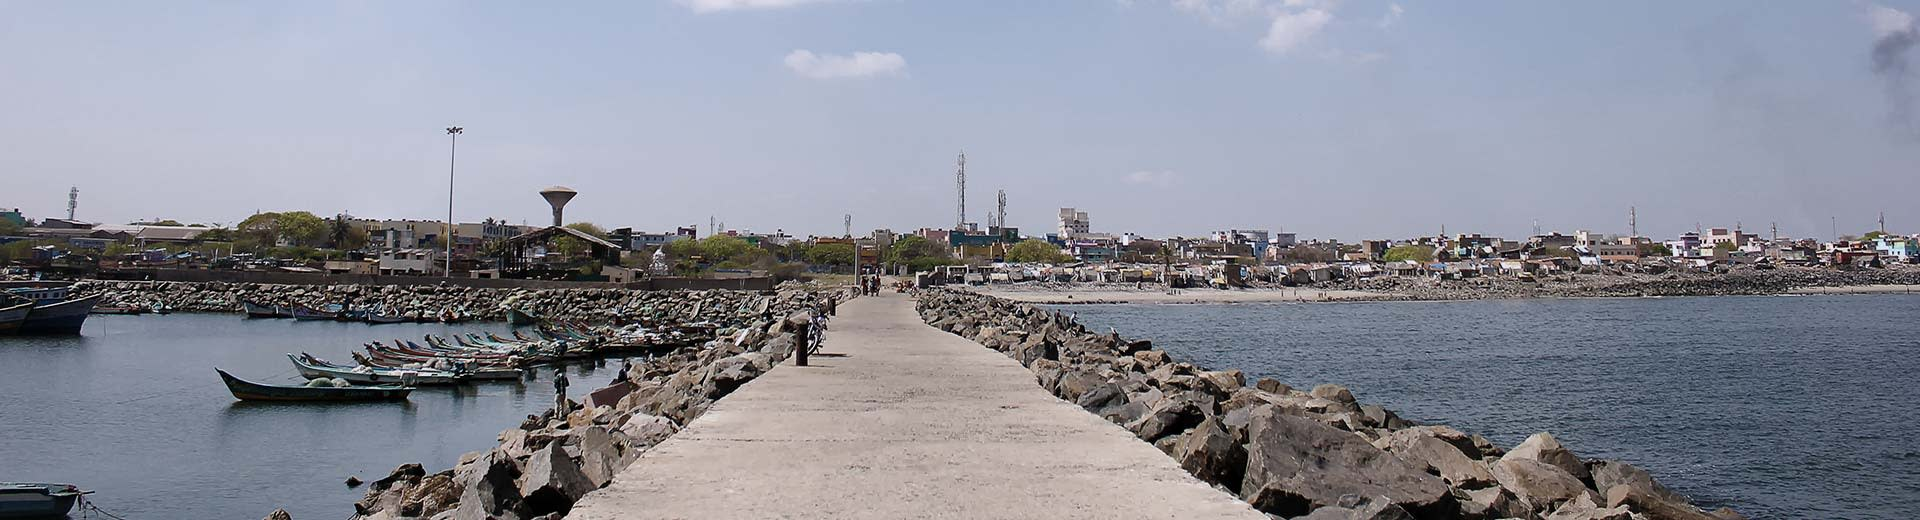 A simple stone pier in Chennai, lined with small boats on a clear and sunny day